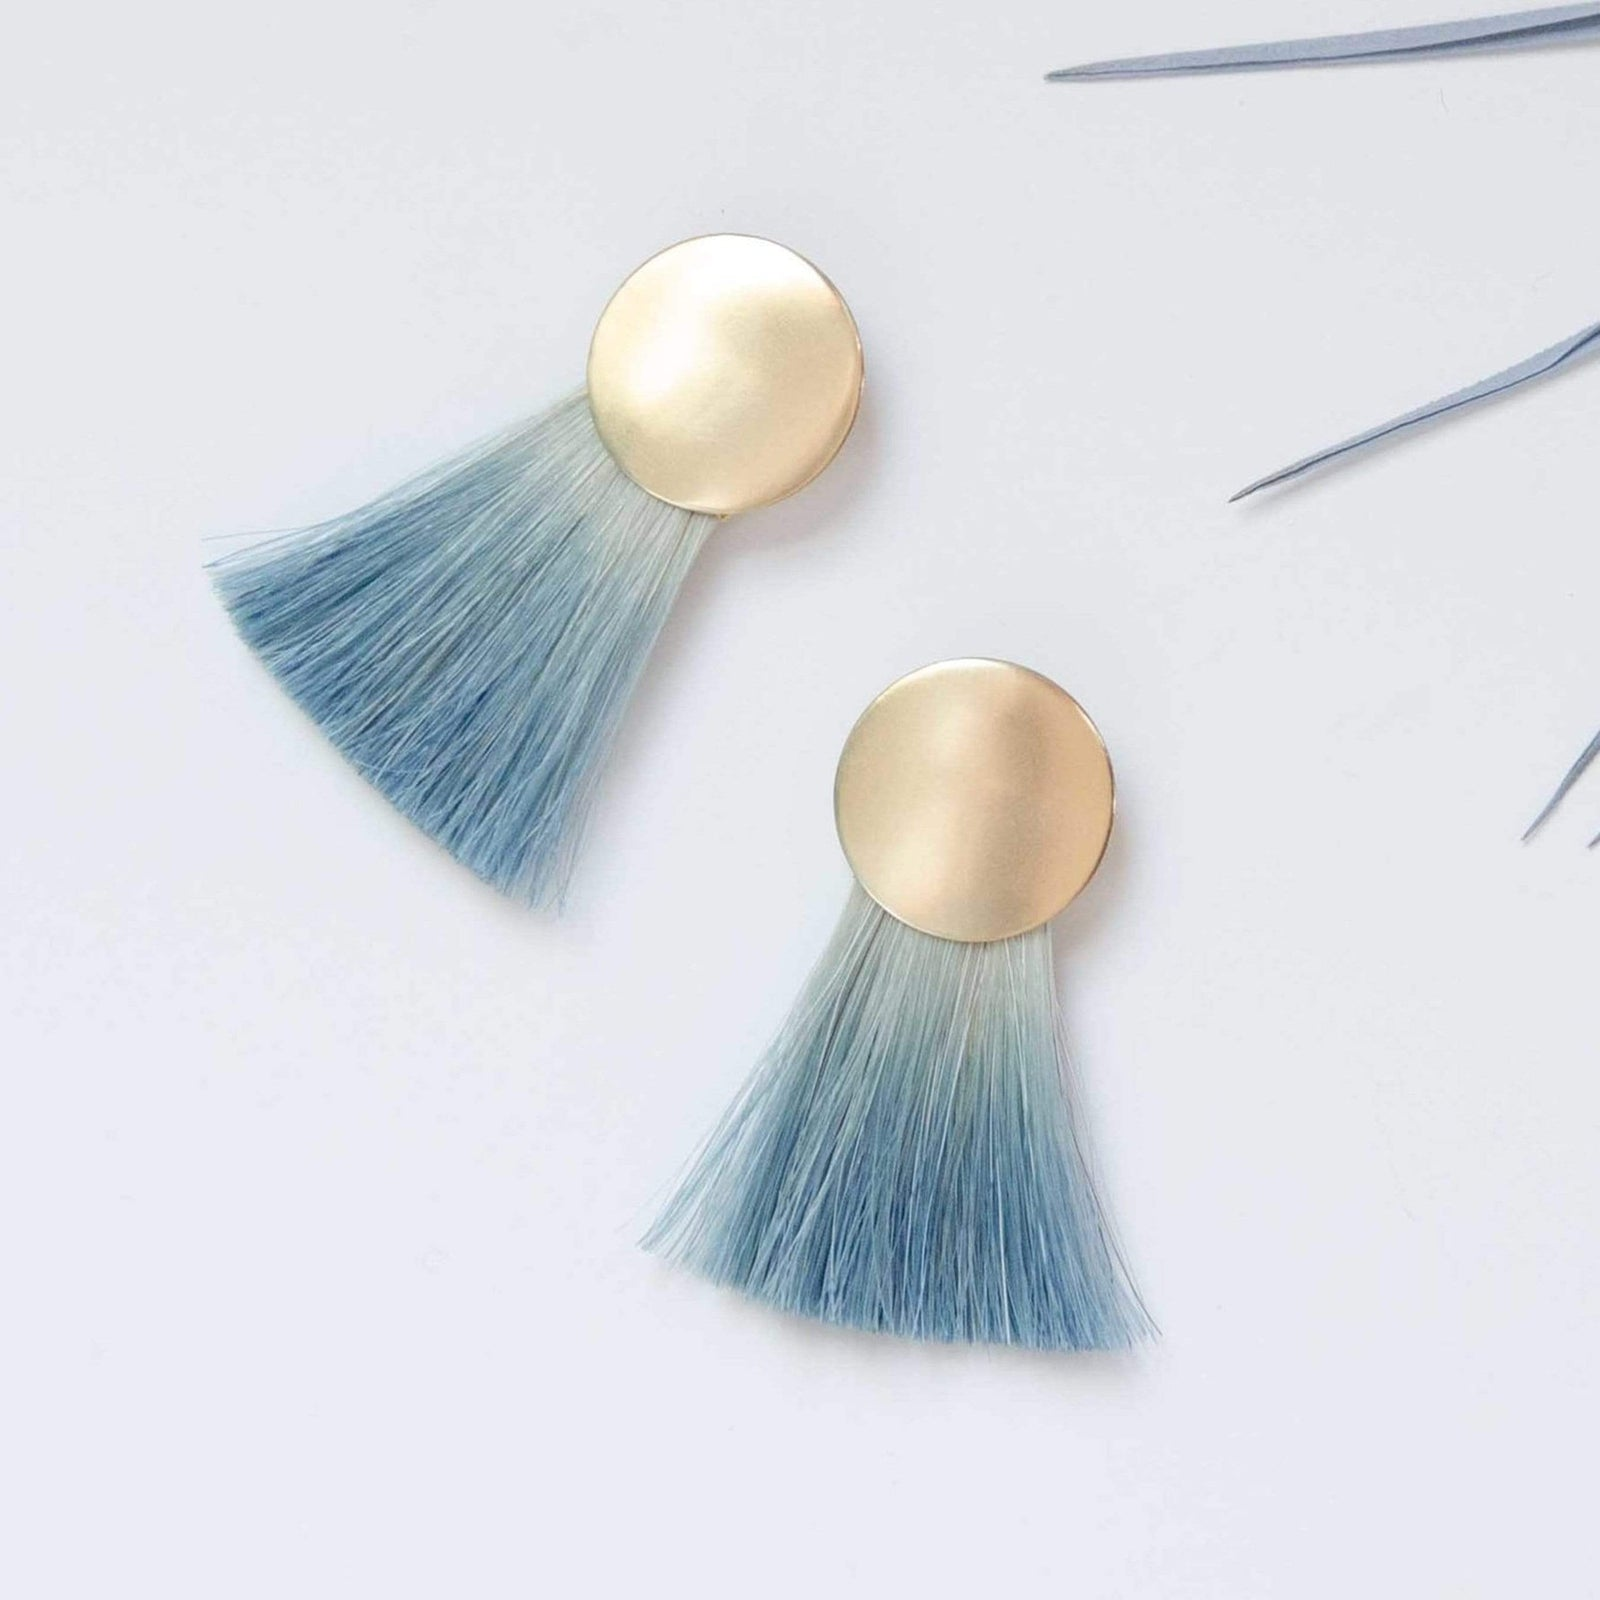 Anna Monet Jewelry Jewelry Indigo Golden Hours Sterling Silver Earrings